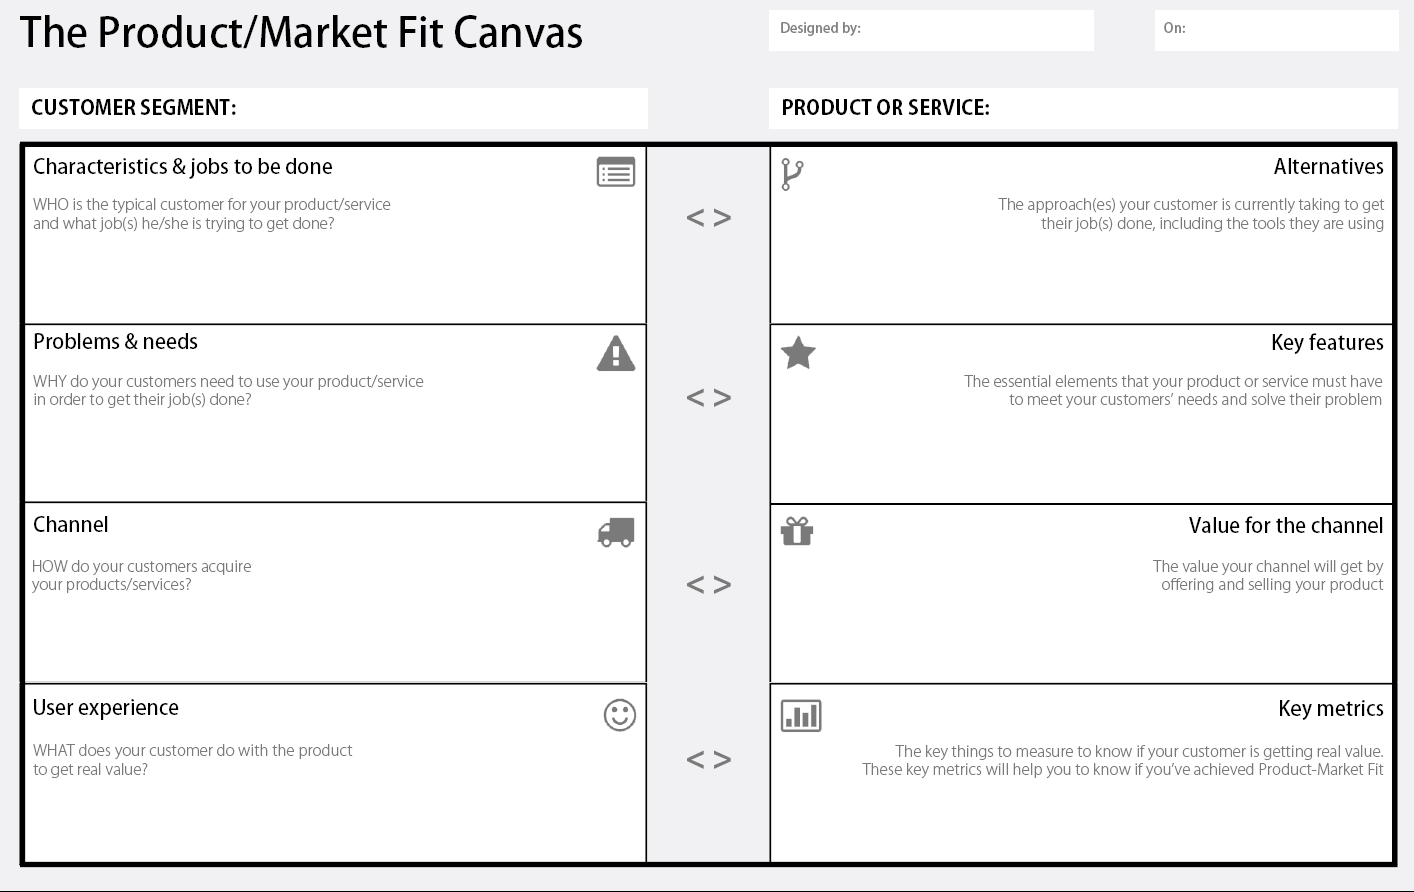 The Product/Market Fit Canvas